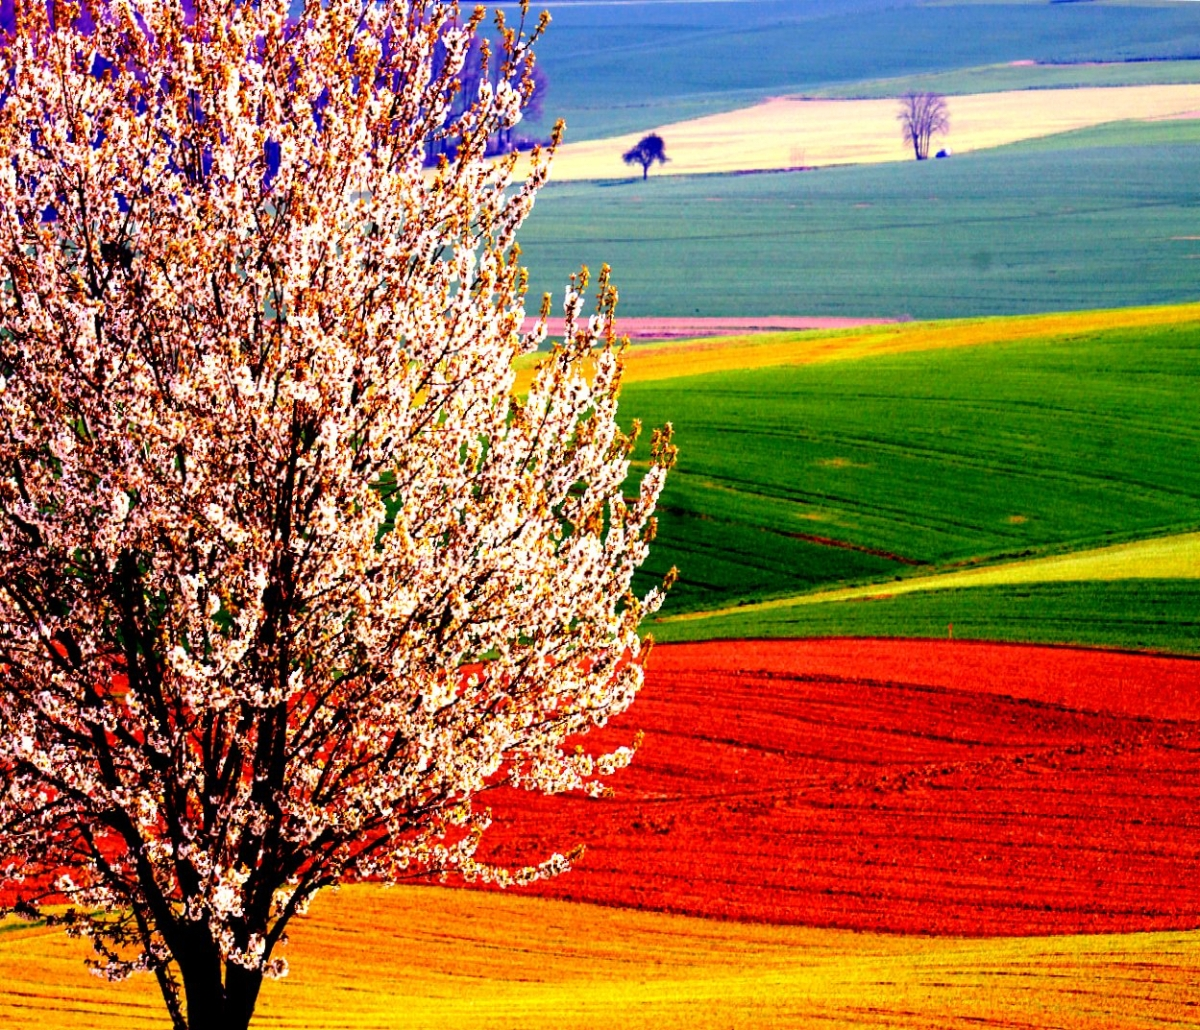 Blosseming tree in Tuscany landscape with bright red, green, and yellow colors